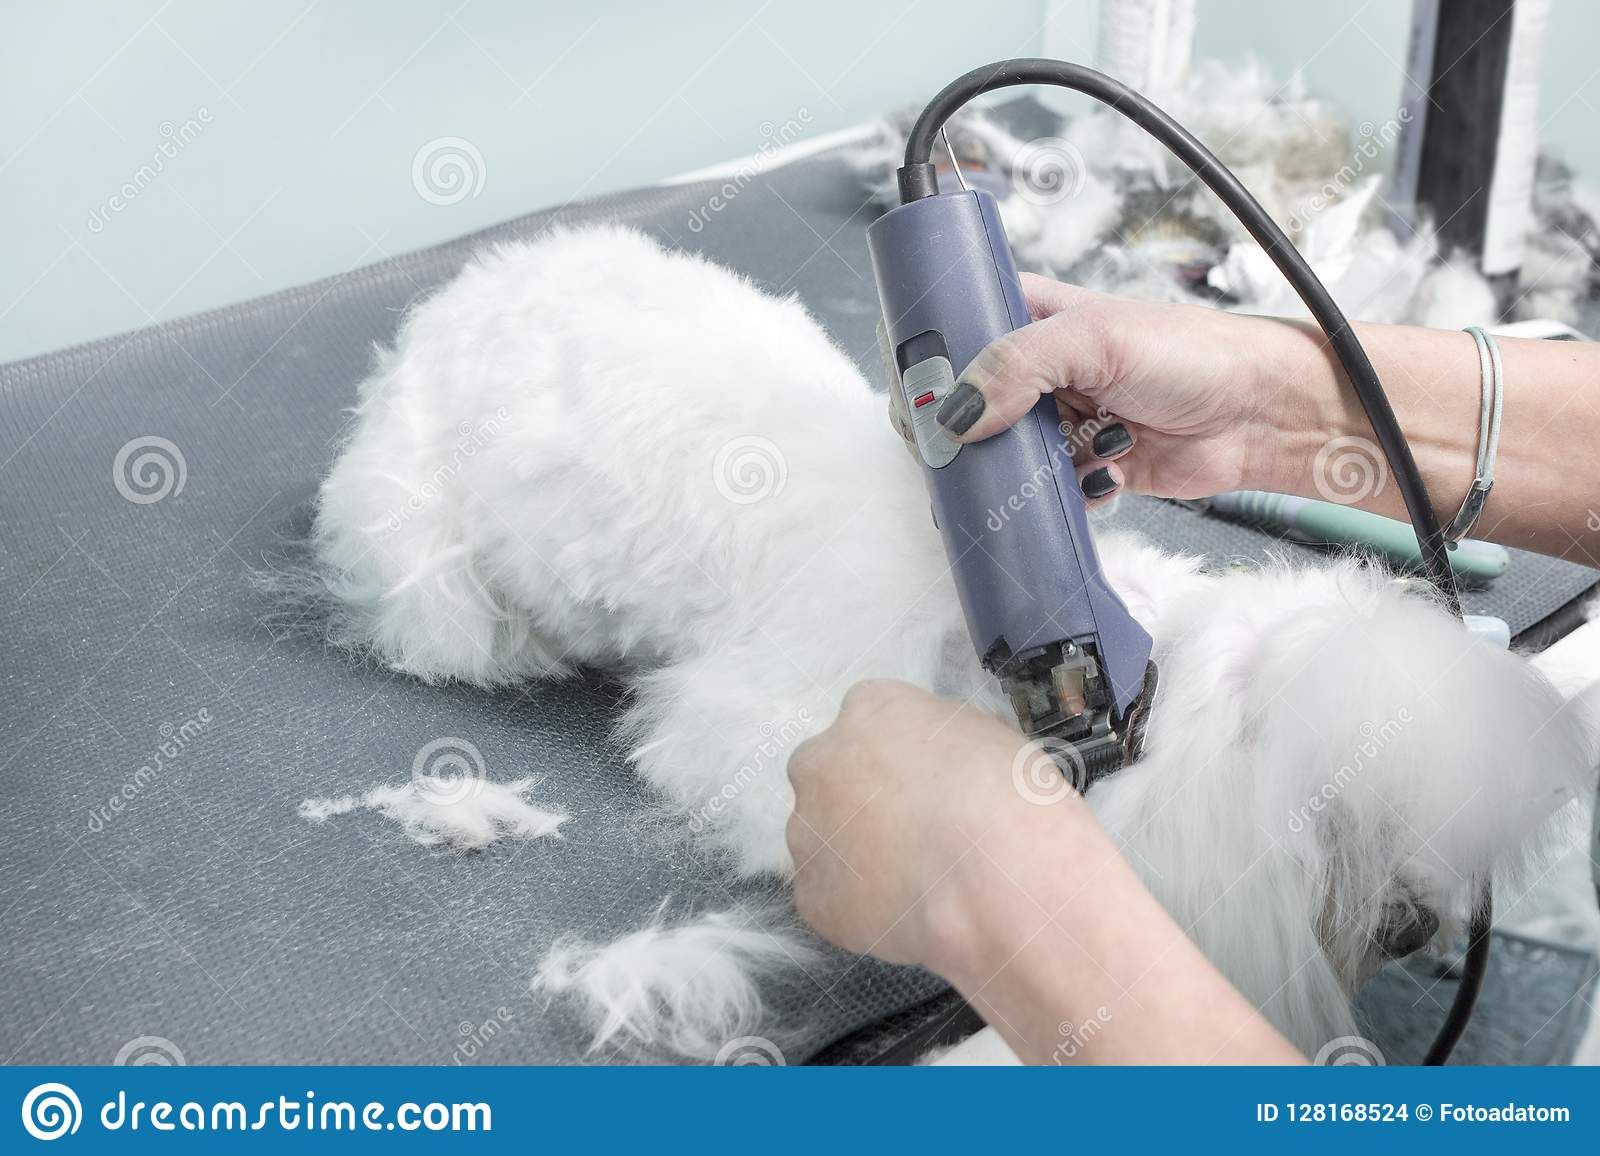 5. A woman cuts a Maltese dog with an electric clipper in an animal beauty salon.